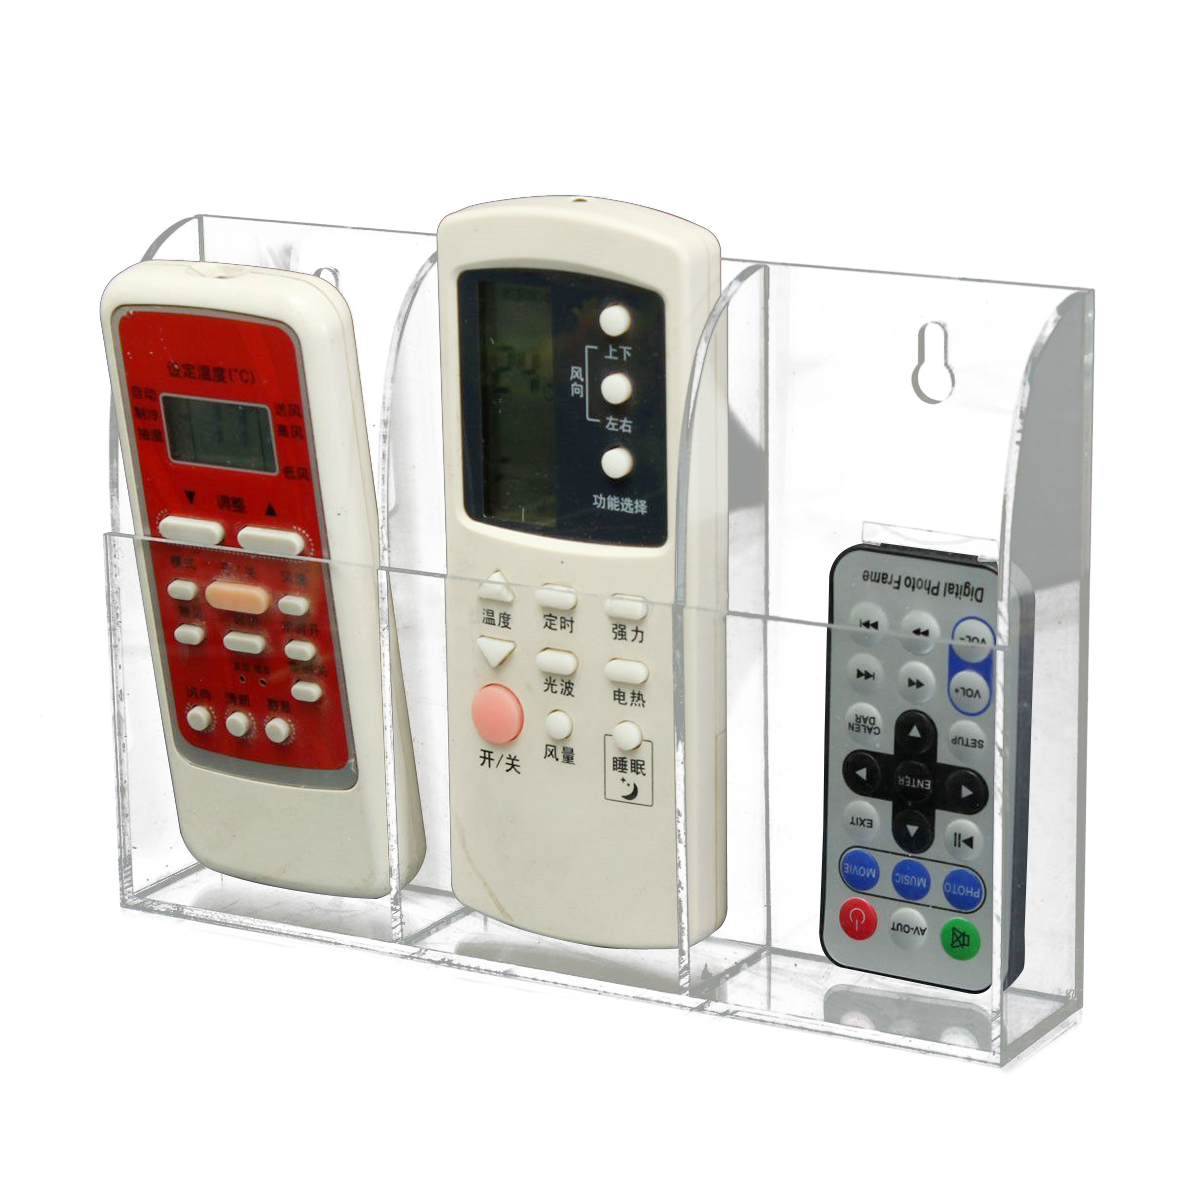 TV-Air-Conditioner-Remote-Control-Holder-Case-Acrylic-Wall-Mount-Storage-H9S thumbnail 9